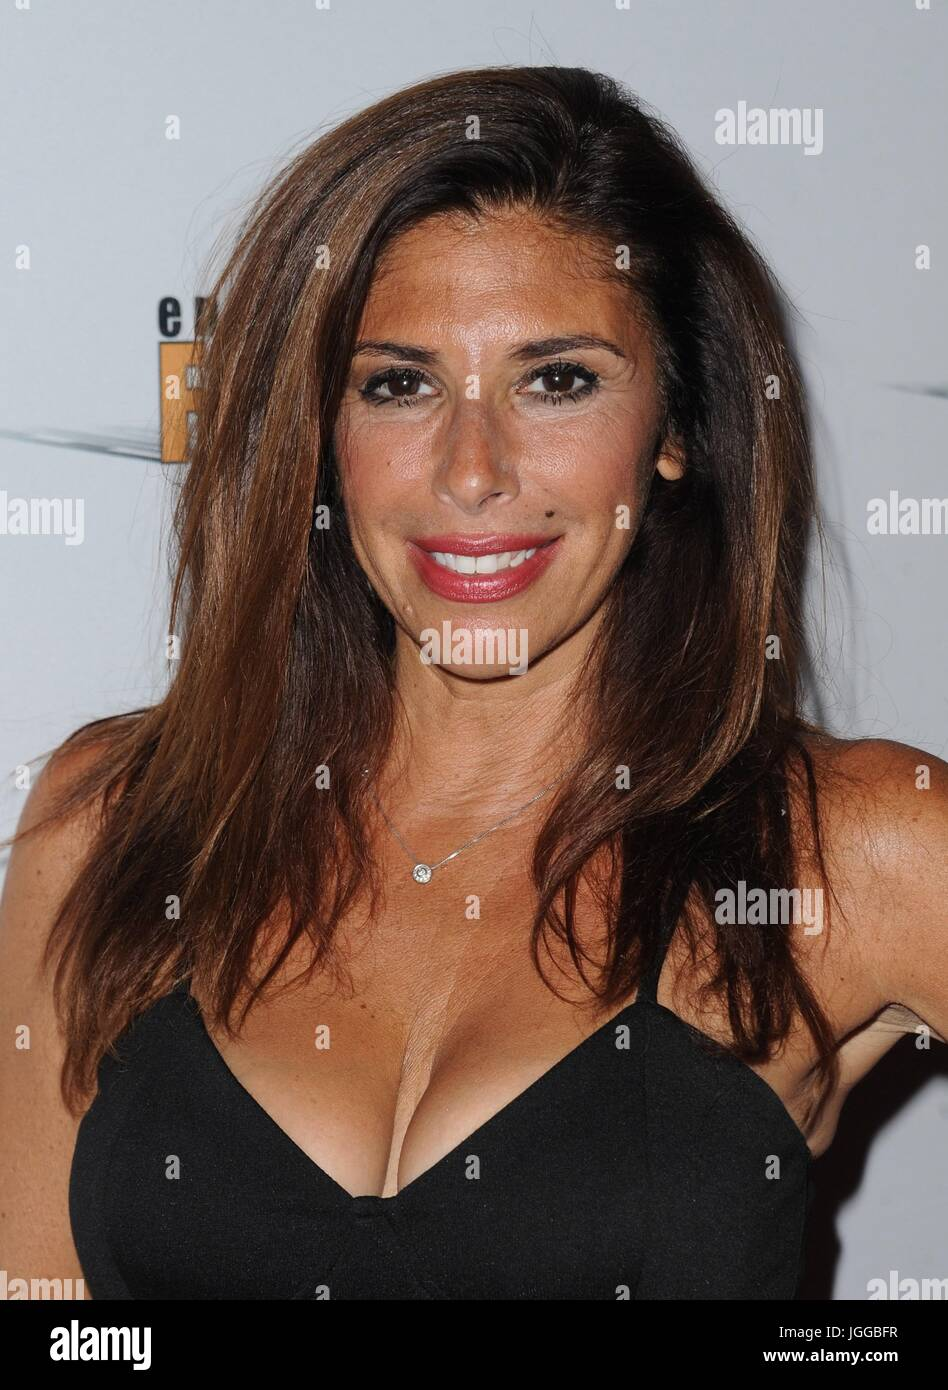 Felissa Rose nude (43 photos), Sexy, Hot, Selfie, in bikini 2006